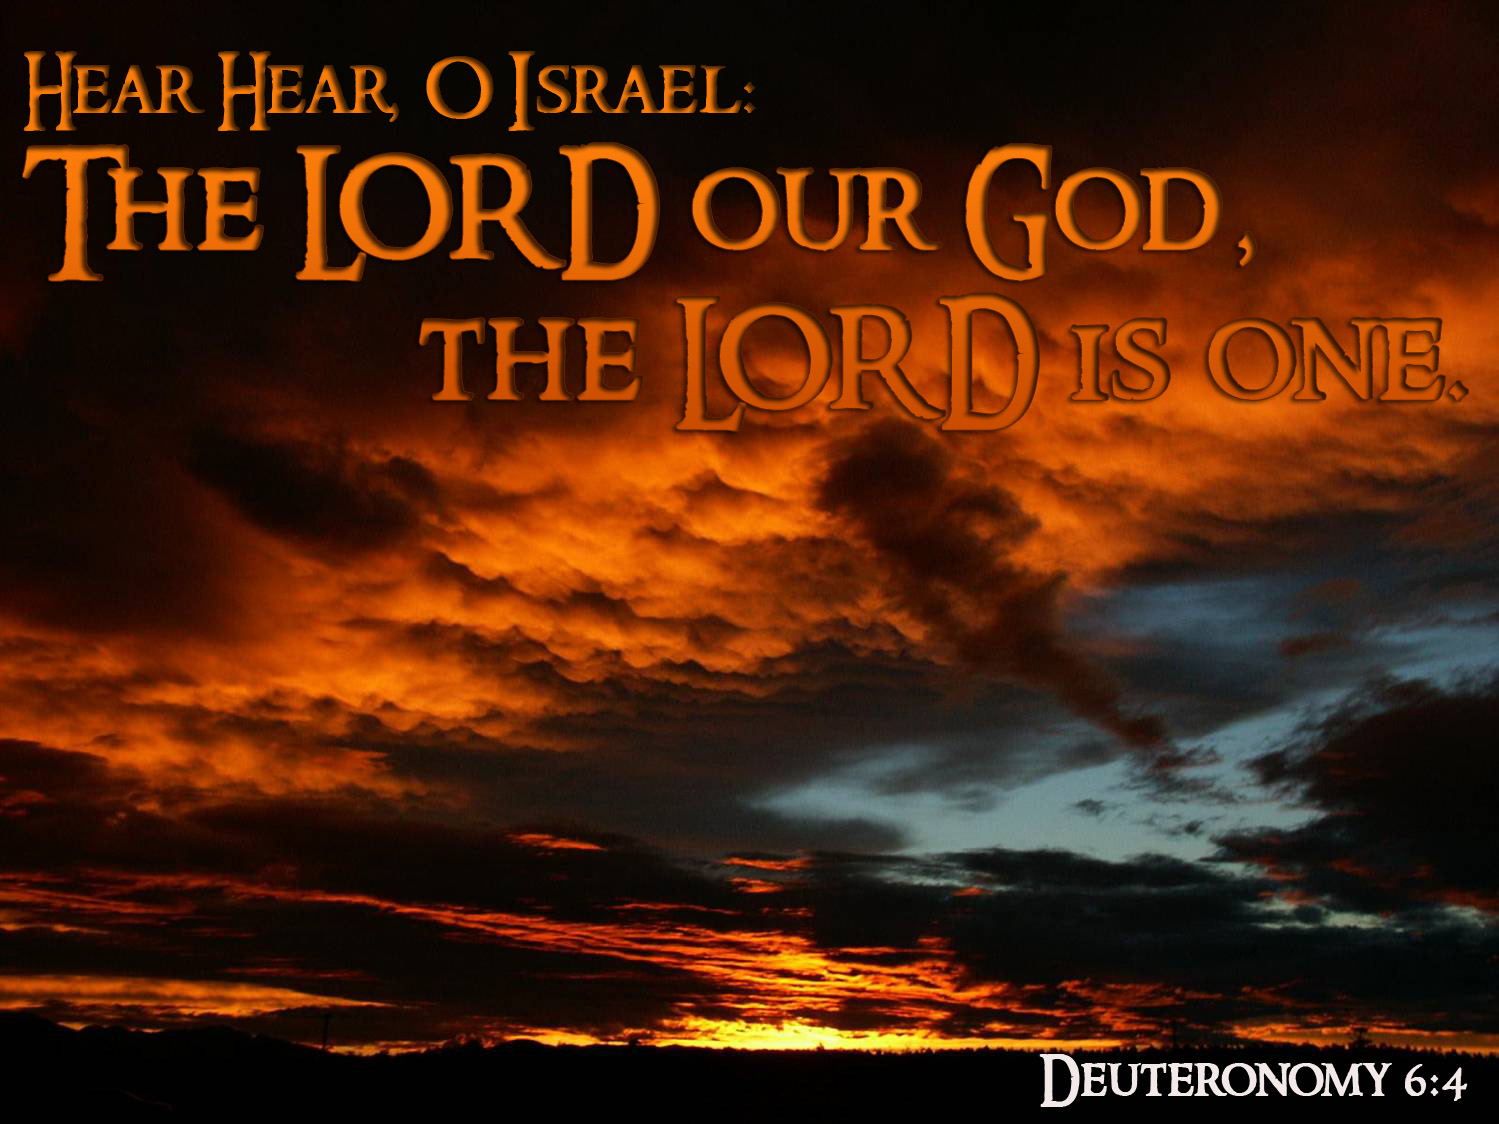 Reminders on God's covenant with Israel from Deuteronomy